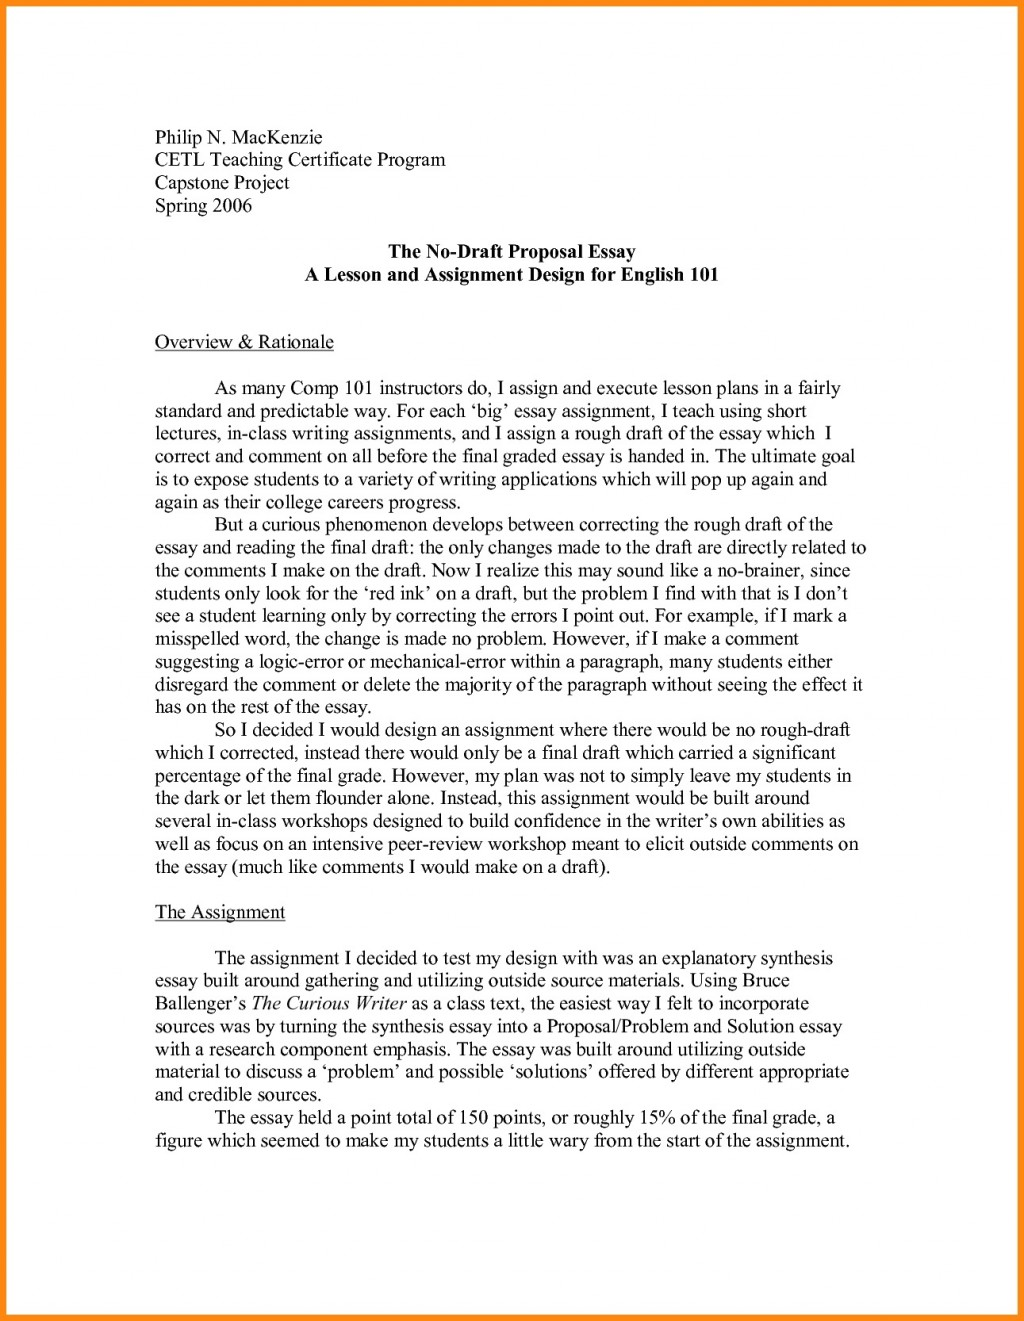 019 Research Paper Papers Topics For Finance Topic Proposal Example Essay At Phenomenal Sample About Education Best 2019 Early Childhood Large